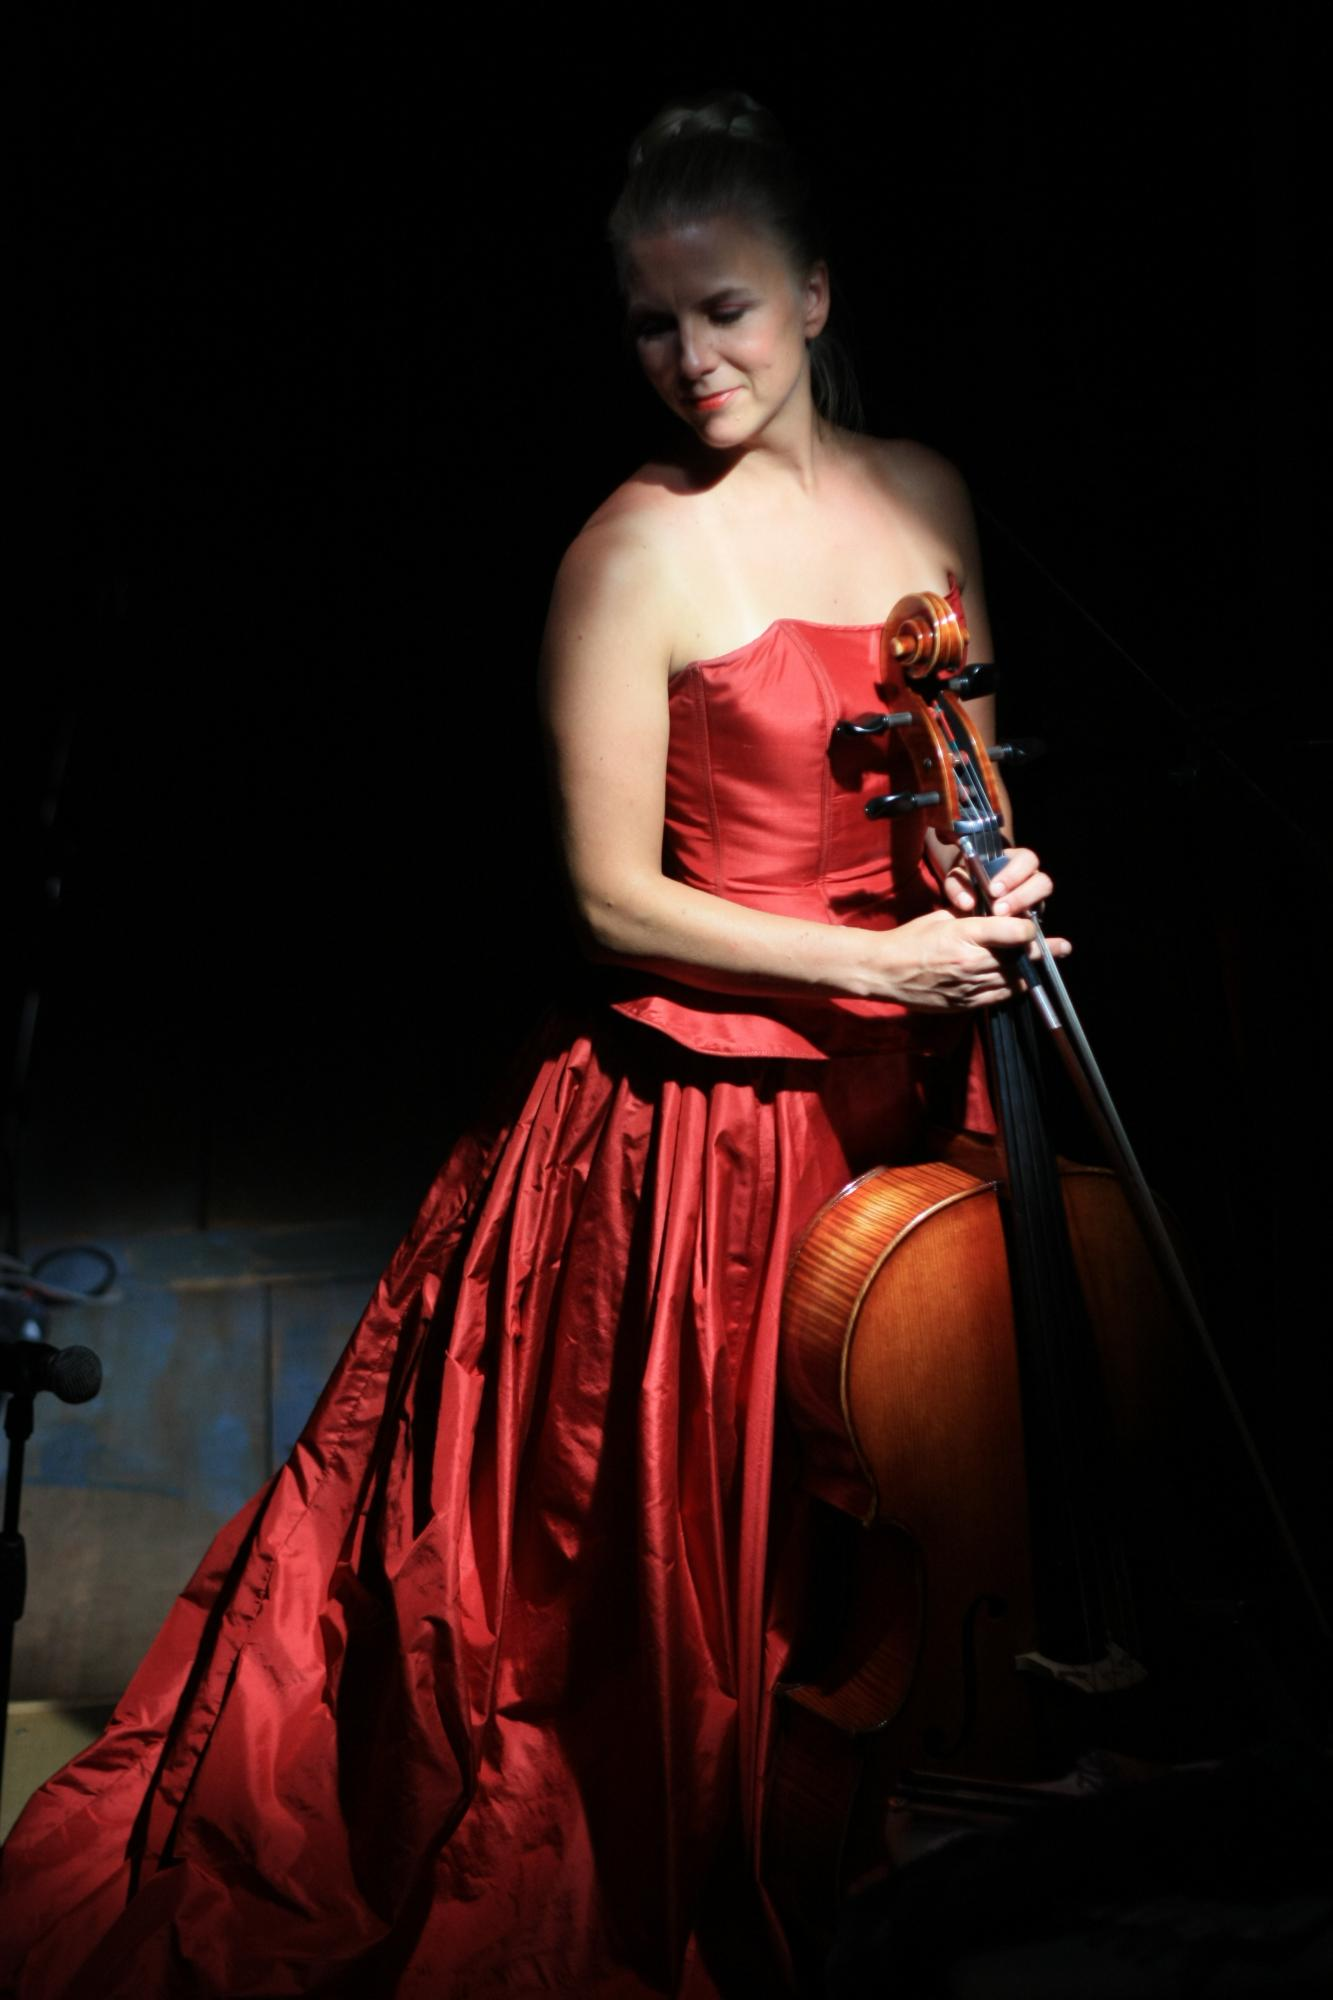 musician in gown holding cello